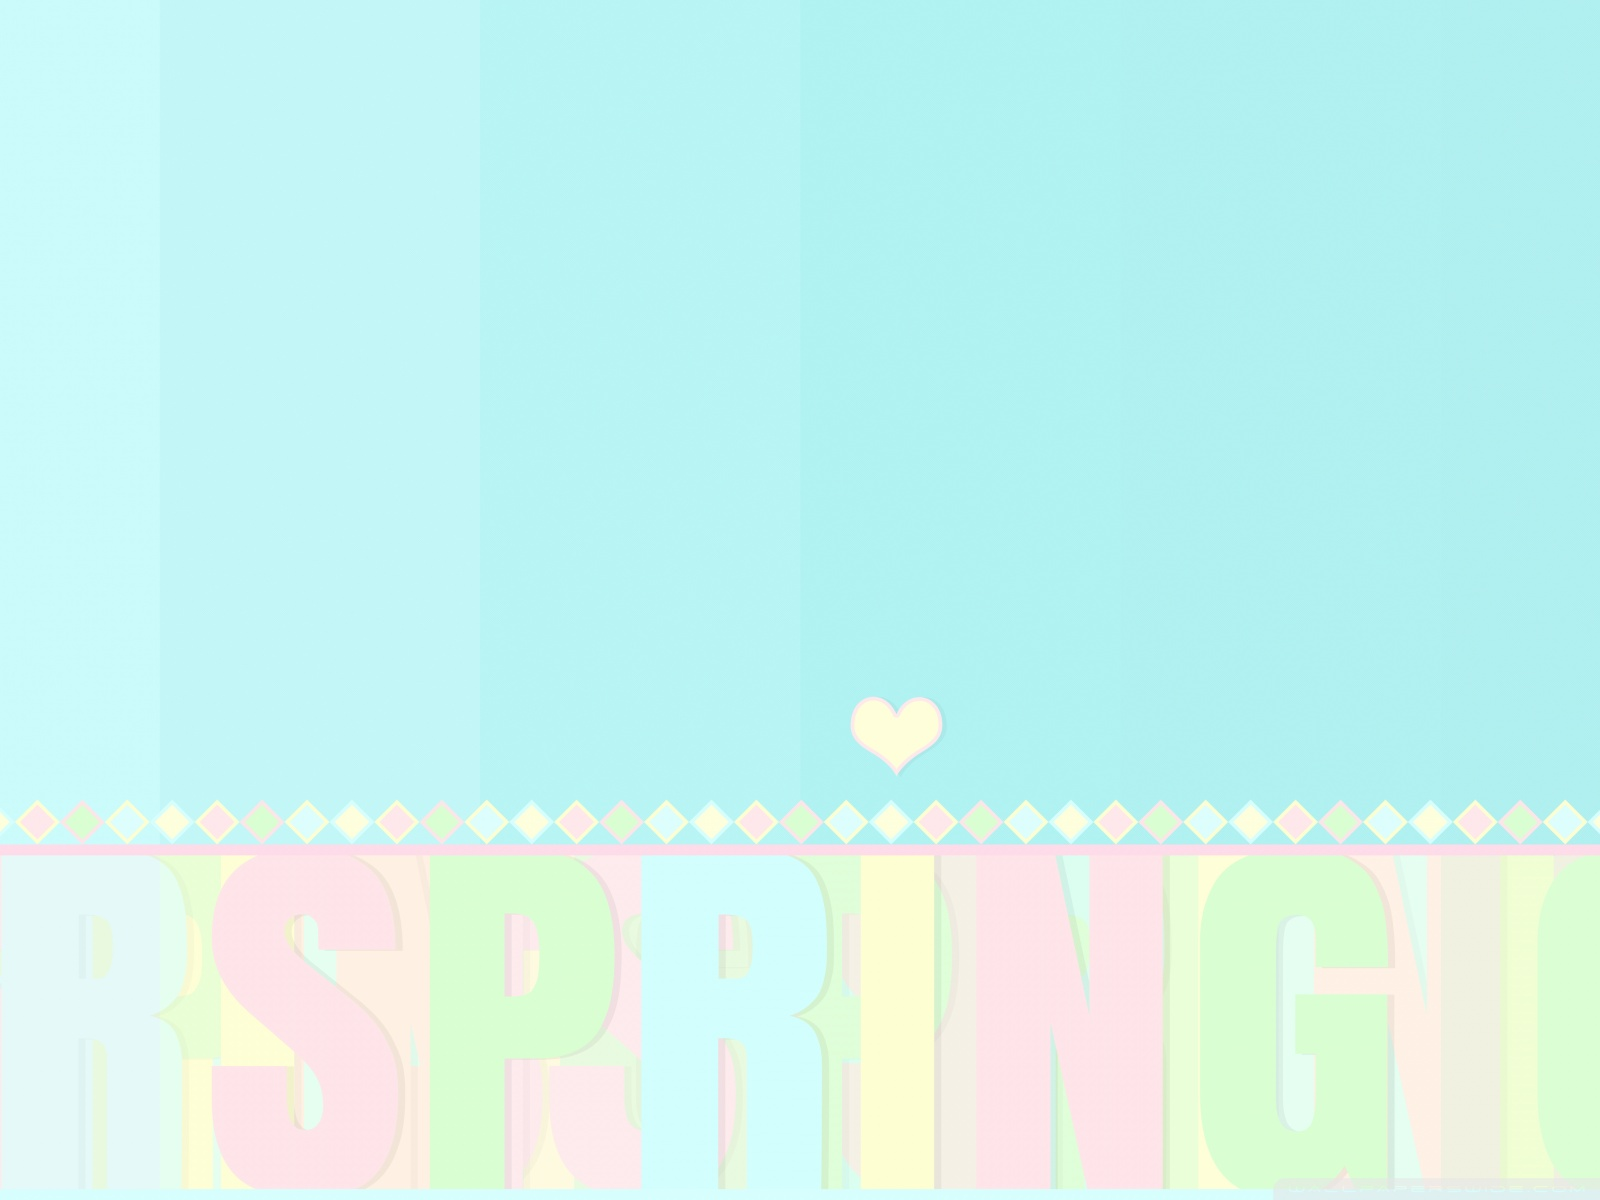 Free Spring phone wallpaper by cherlarmstrong